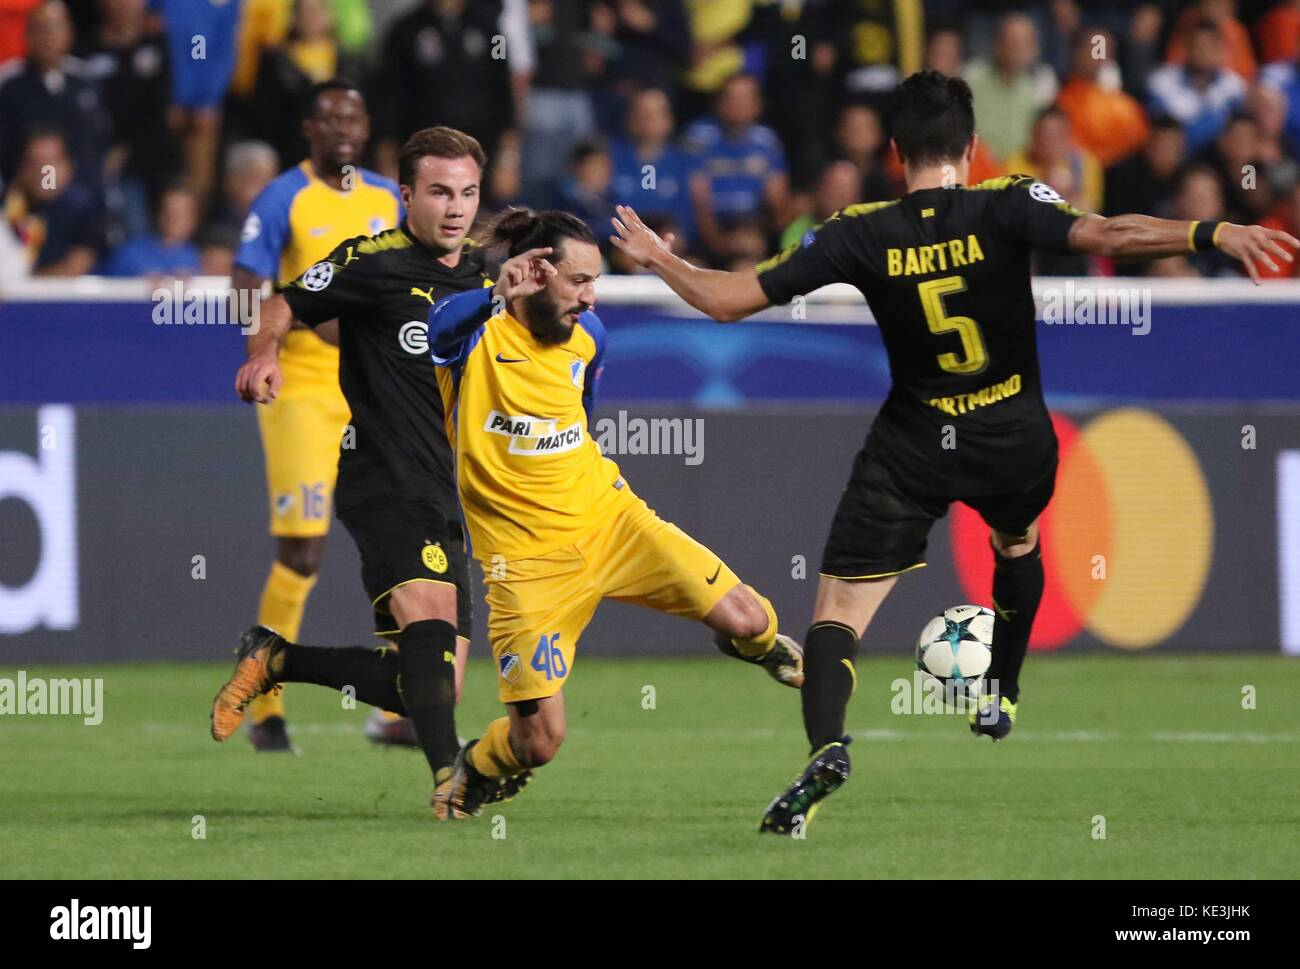 Nicosia, Cyprus. 17th Oct, 2017. Apoel's Stathis Aloneftis (C) vies for the ball during the 2017-2018 Champions Stock Photo